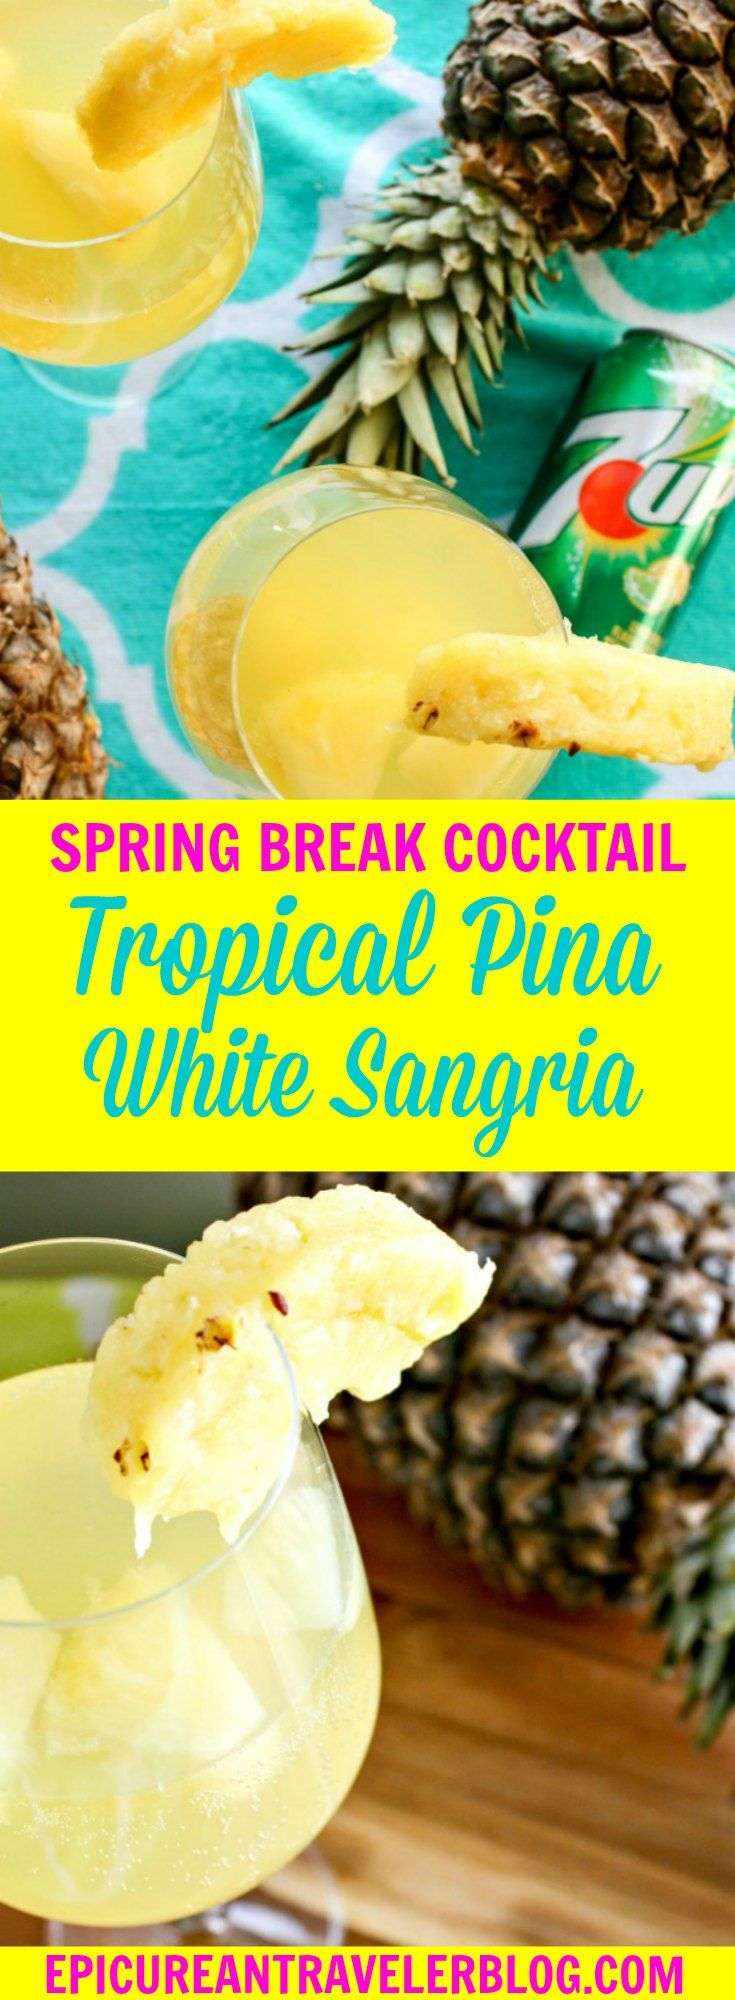 Msg 4 21+ | Whether you are traveling somewhere warm and sunny for spring break or just wish you were, this tropical piña white sangria will have you feeling like you are relaxing in a tropical paradise. And with only five ingredients, this cocktail is beach-ready in 15 minutes or less. Get the recipe today on EpicureanTravelerBlog.com! #ad #JustAdd7UP